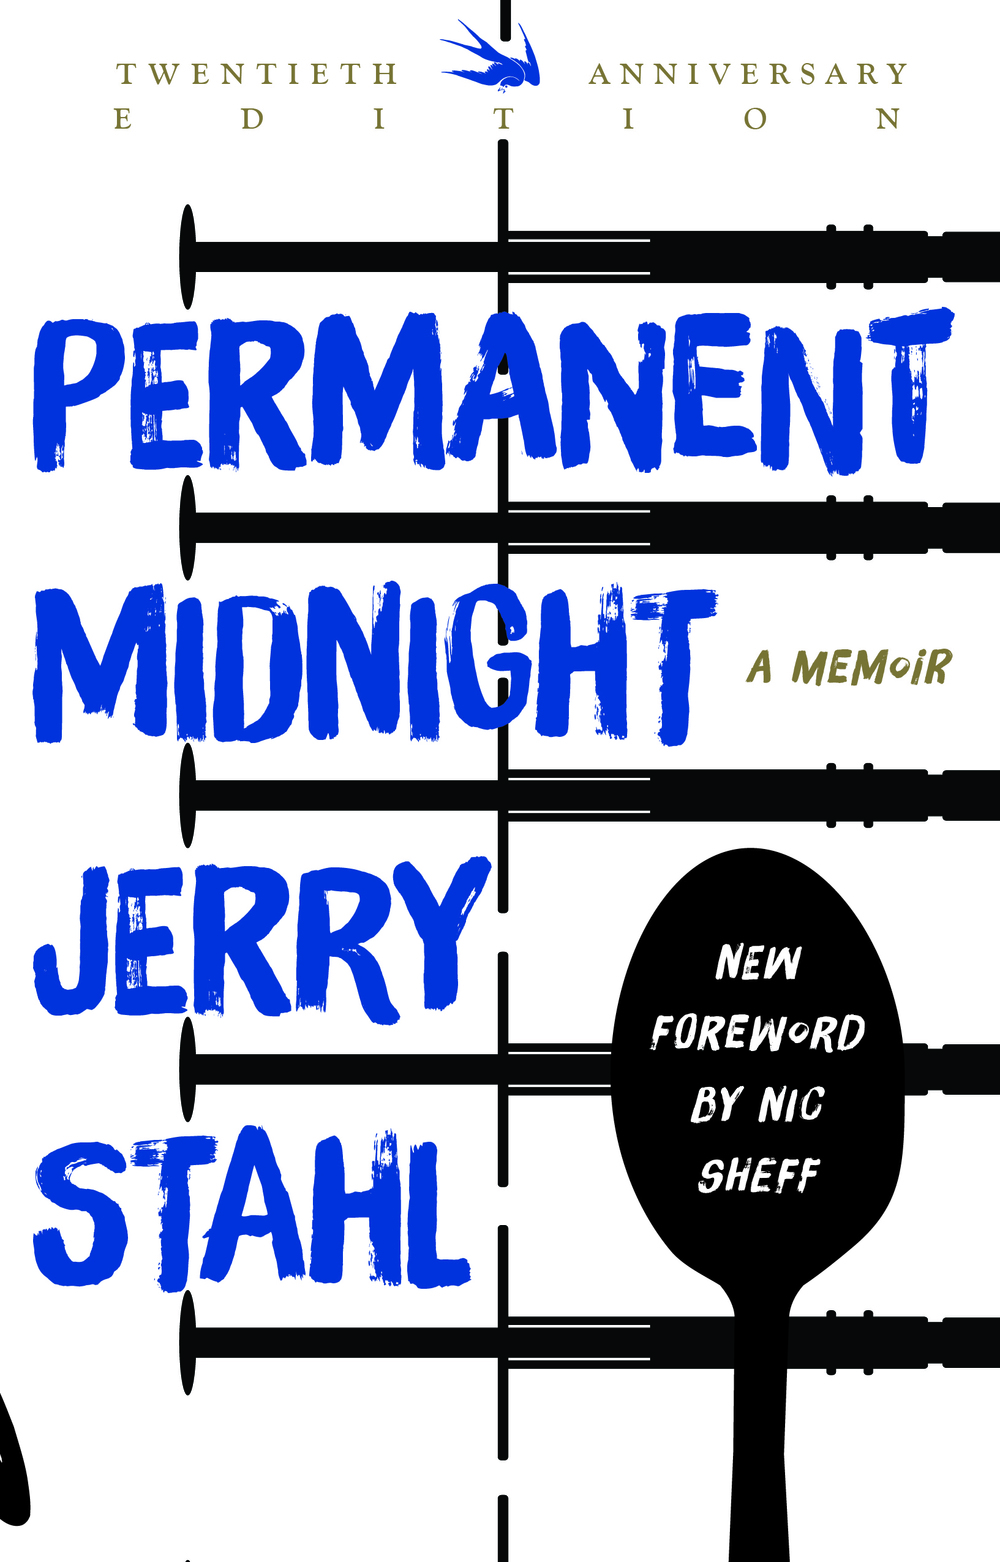 Jerry Stahl's seminal memoir of drug addiction and a career in Hollywood, Permanent Midnight is a classic along the lines of Hubert Selby, Jr.'s Last Exit to Brooklyn. Illuminating the self-loathing and self-destruction of an addict's inner life, Permanent Midnight follows Stahl through the dregs of addiction and into sobriety.